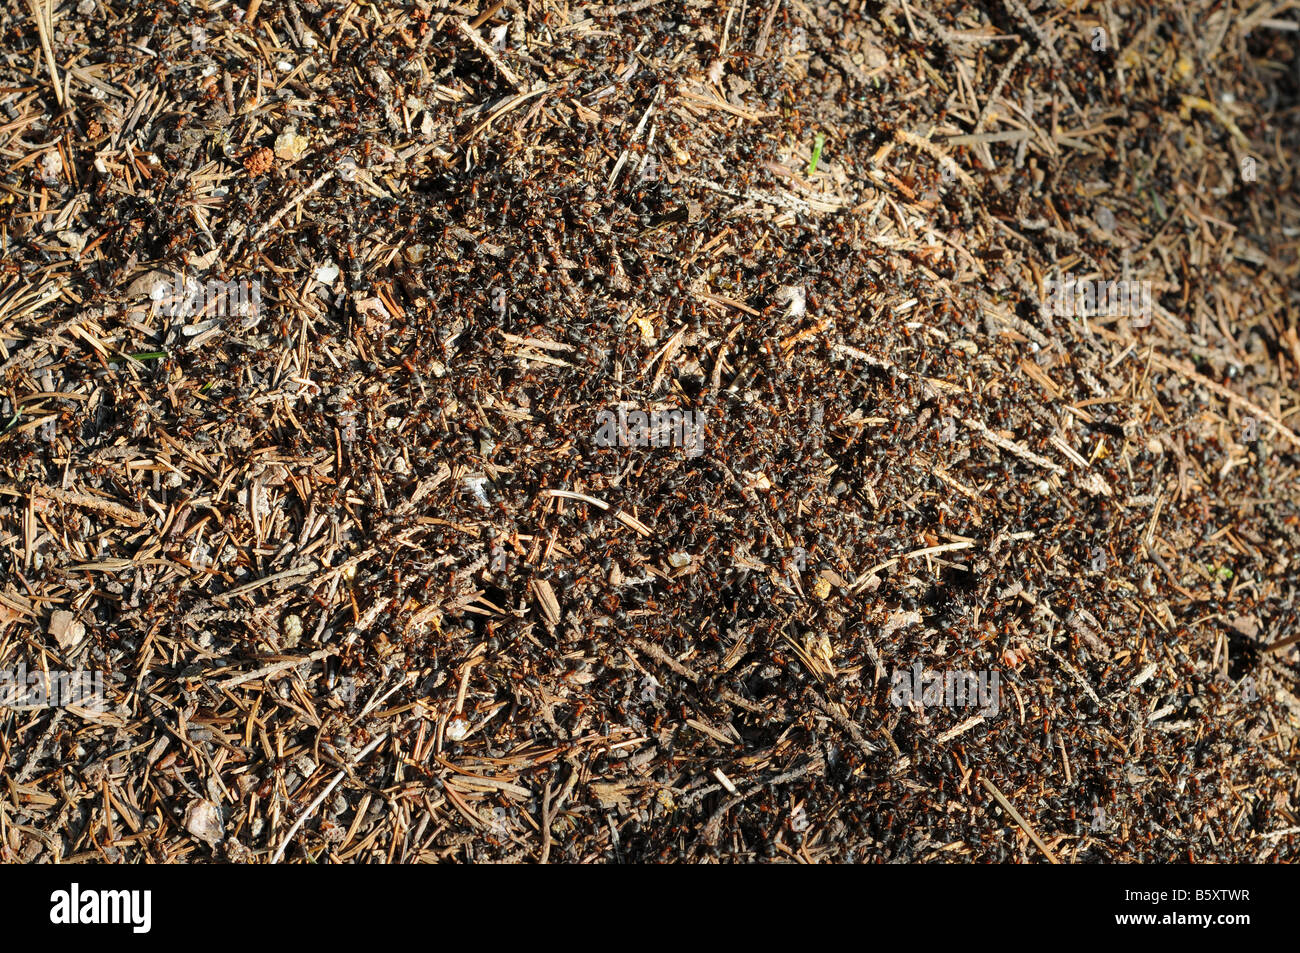 A lot of wood ants - Formica rufa L. - on an anthill. Stock Photo